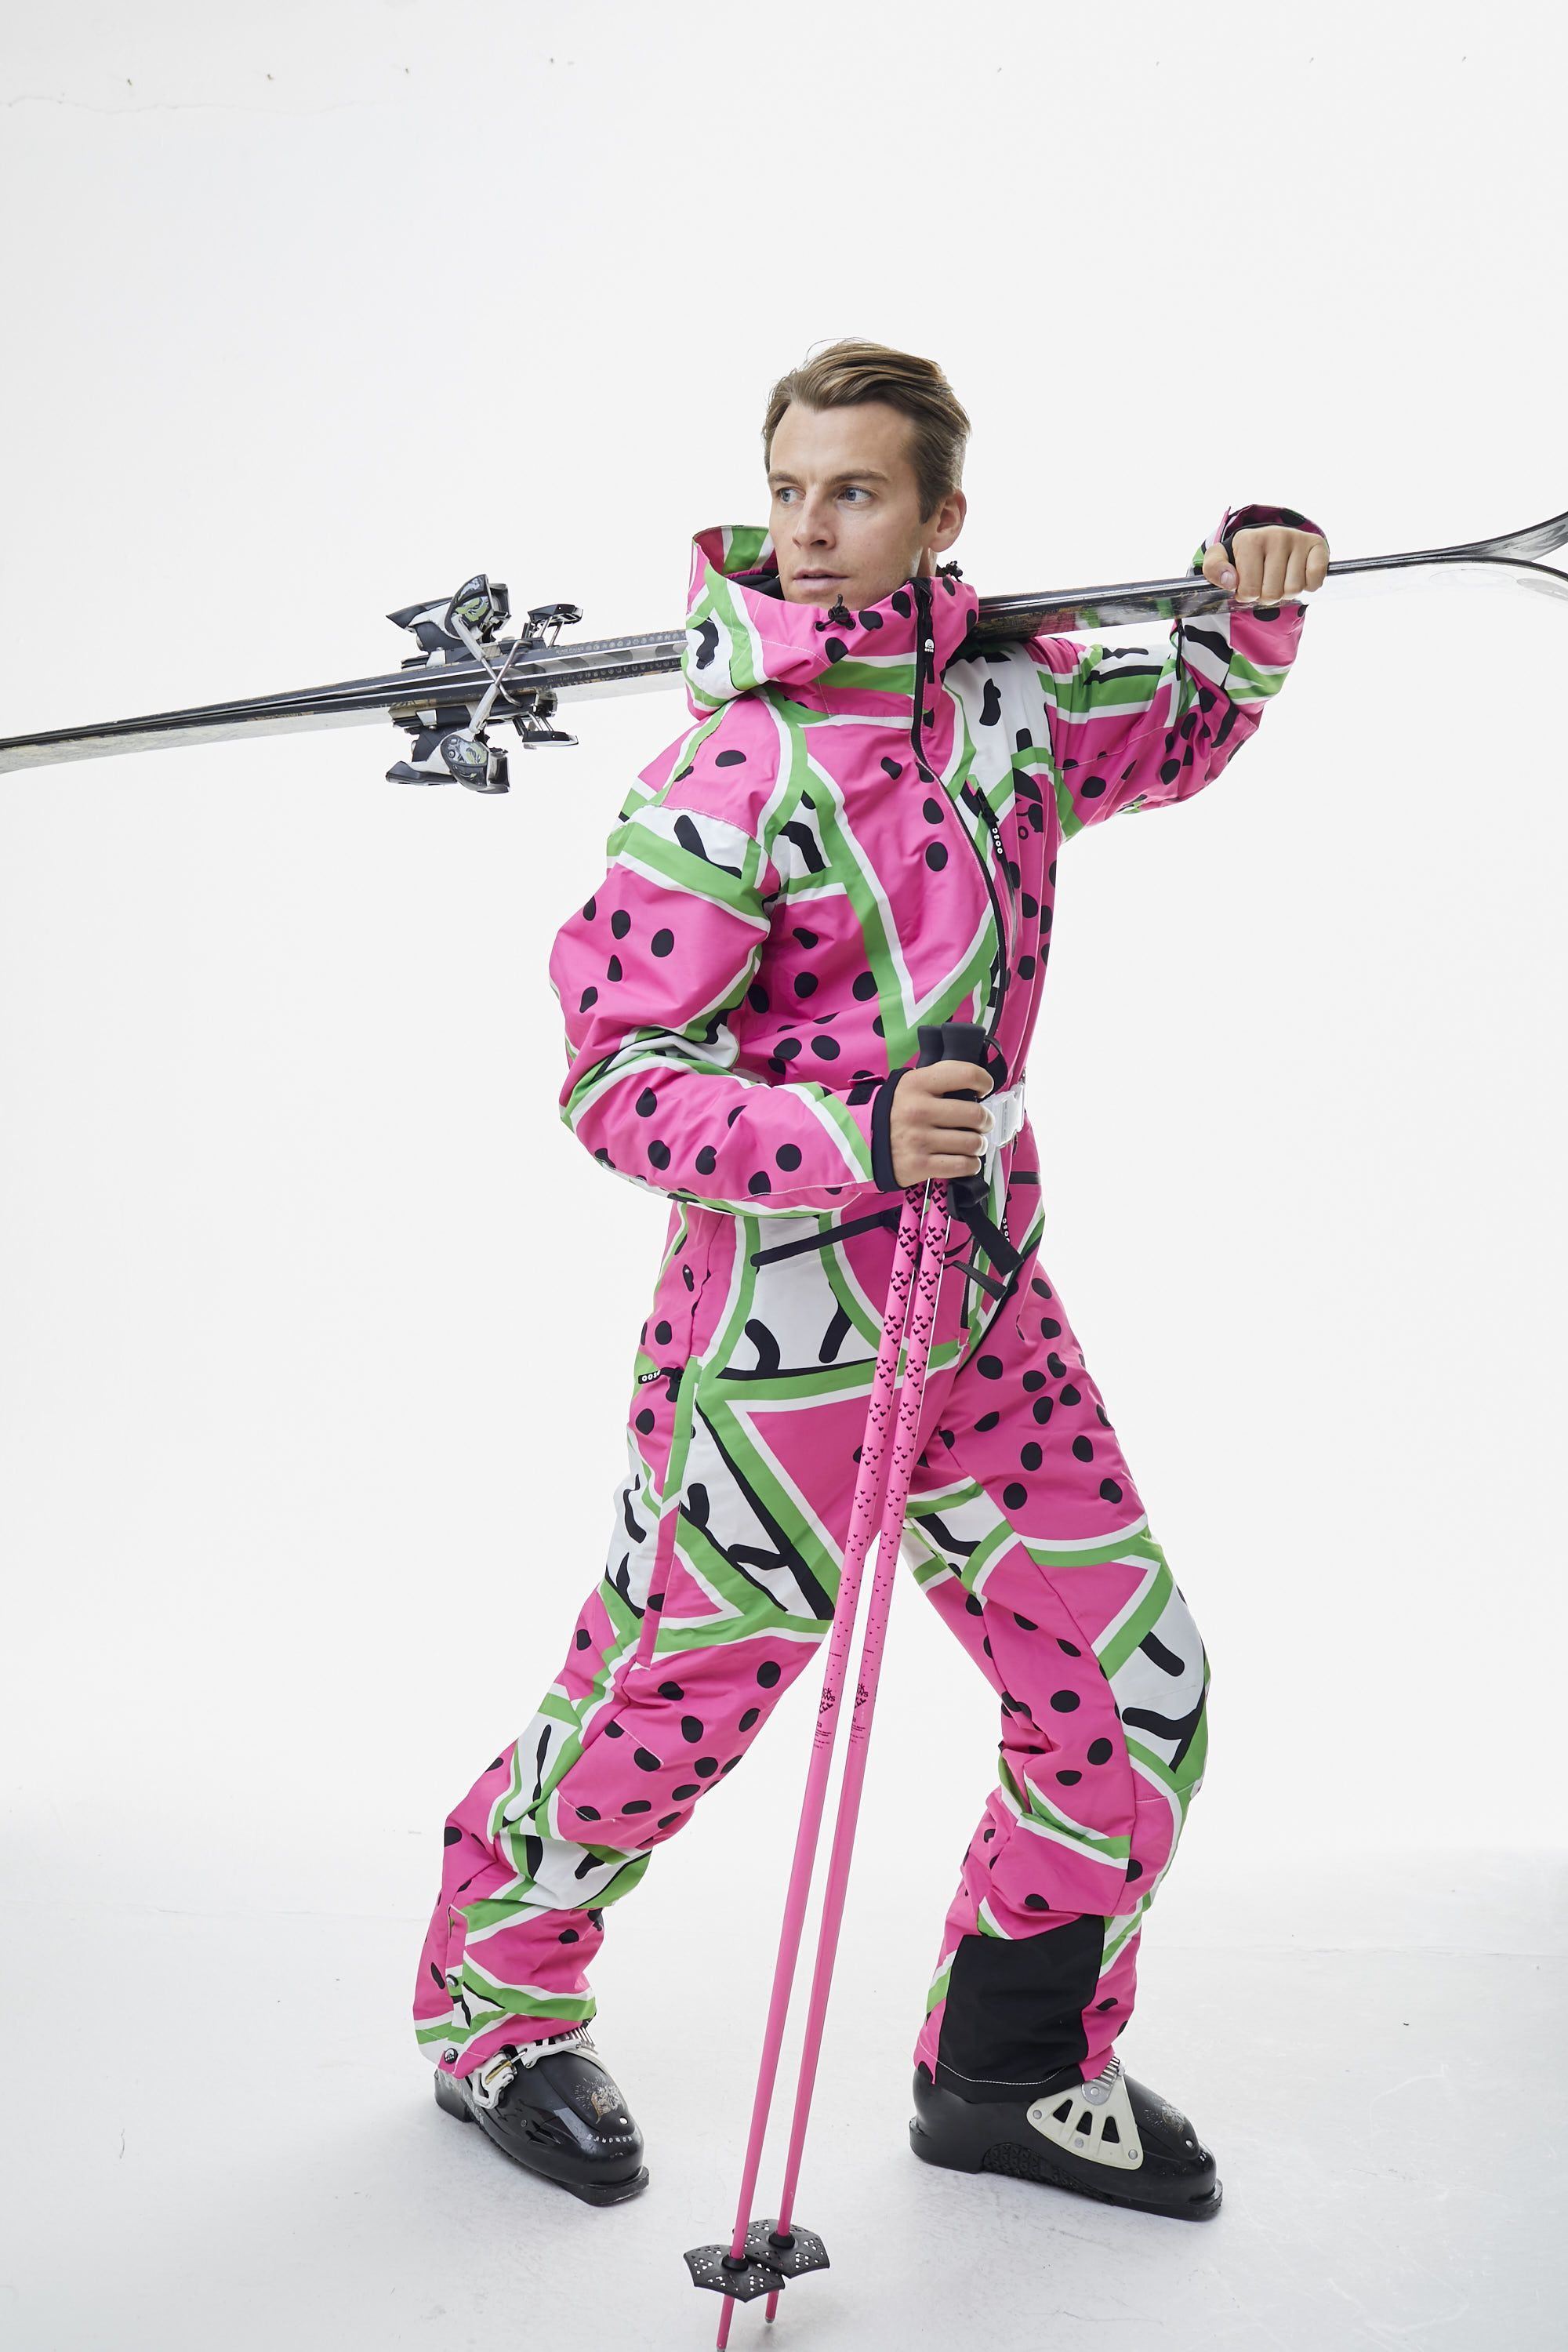 All In One Ski Suit - Watermelon - OOSC Clothing   Clothes